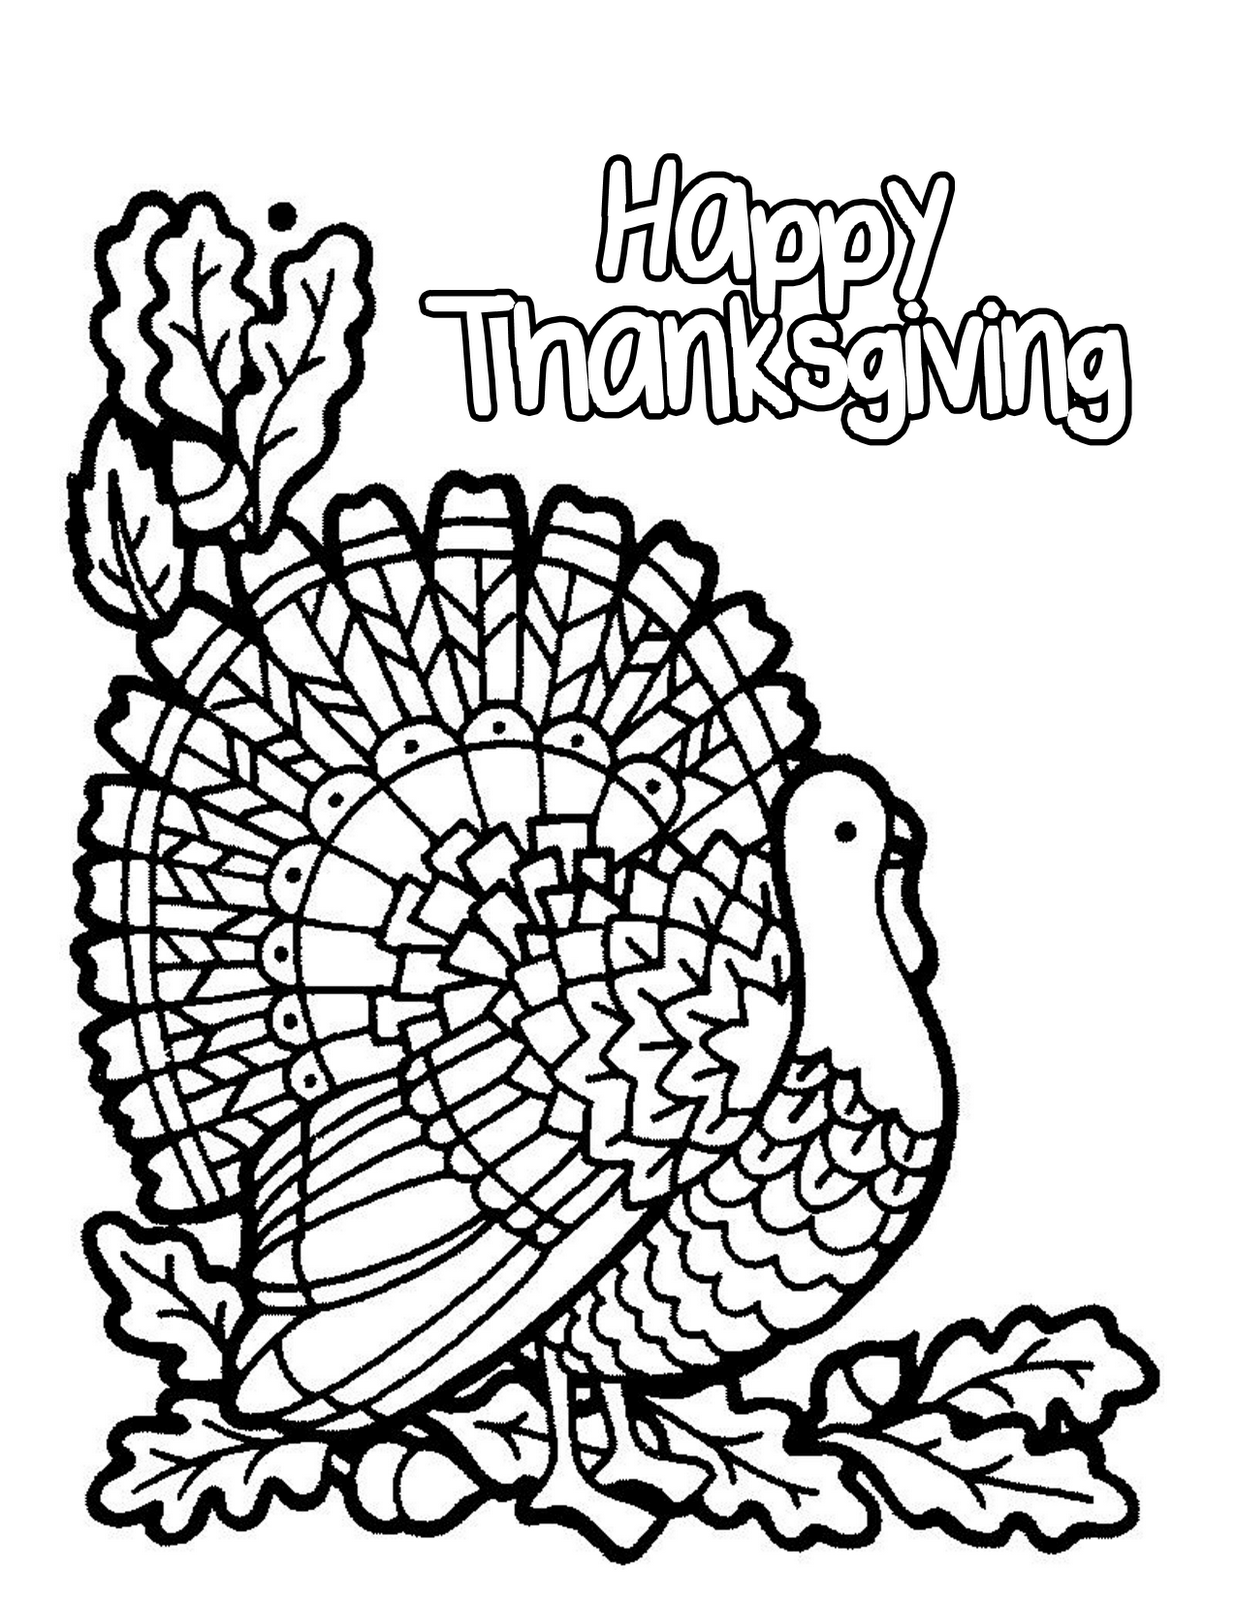 1236x1600 Informative Happy Turkey Day Coloring Pages Printable Thanksgiving